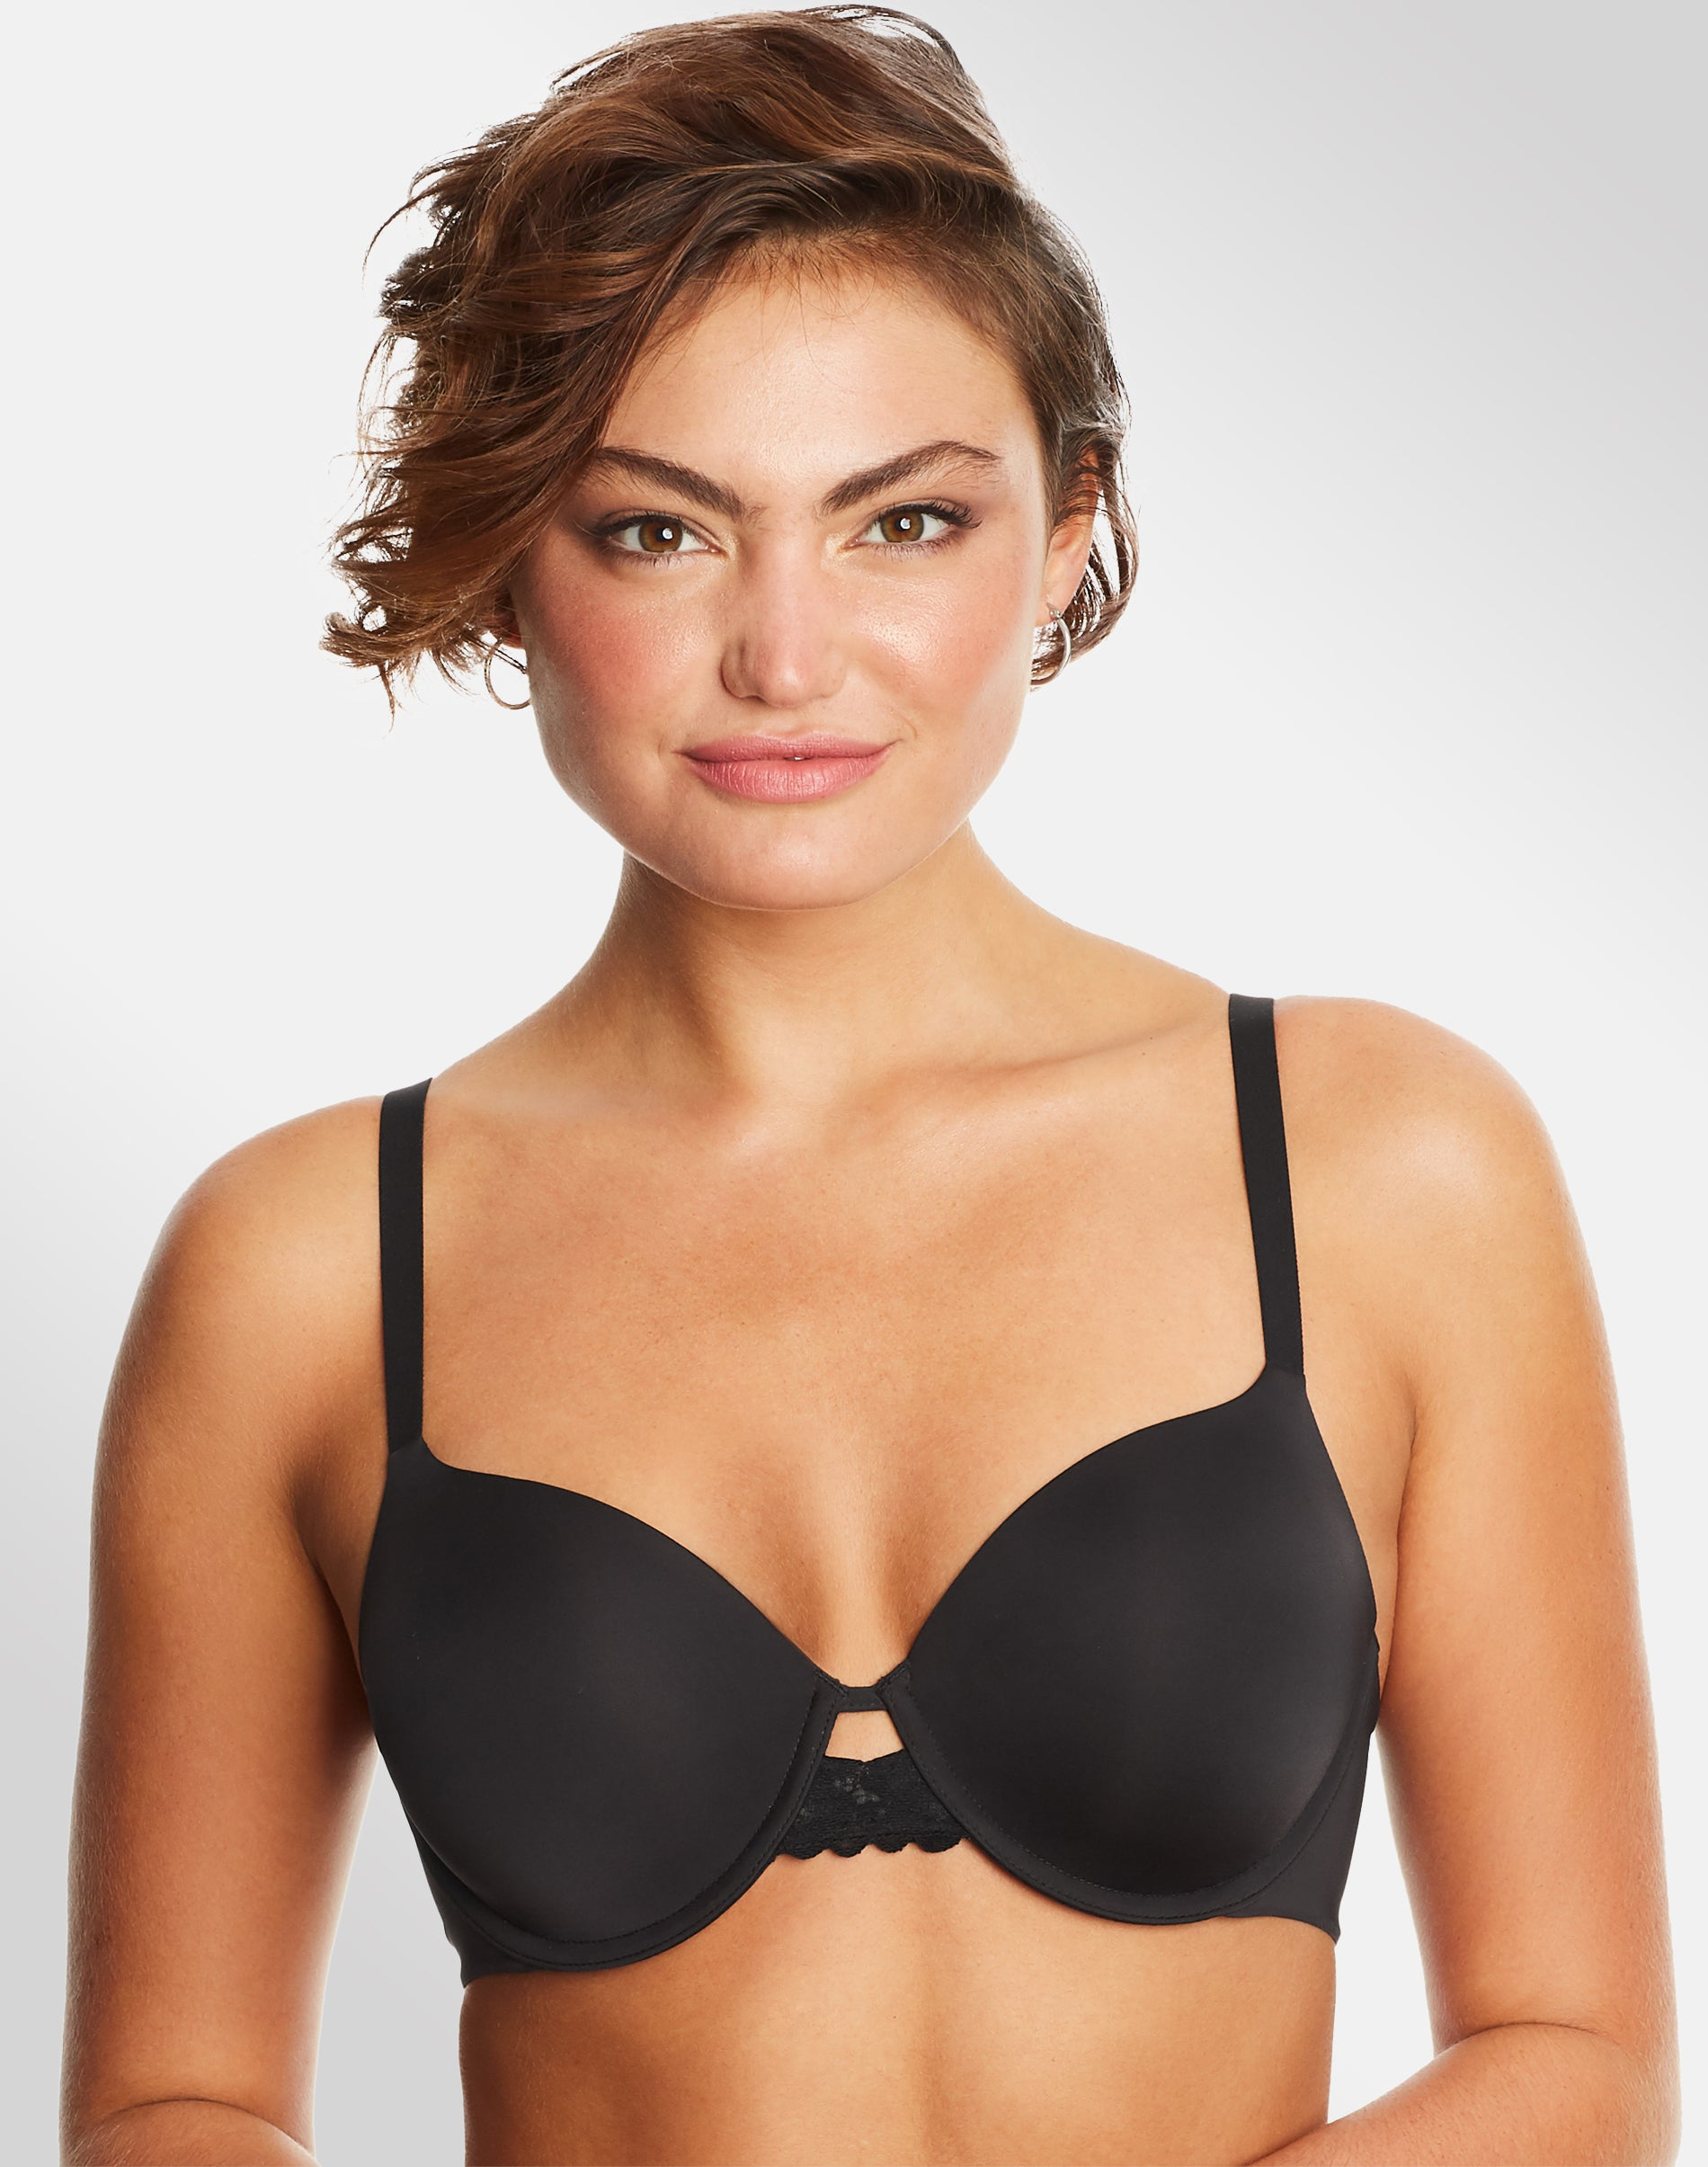 Maidenform Self Expressions 6660 Push Up and In Underwire Bra 38C Gray NWT